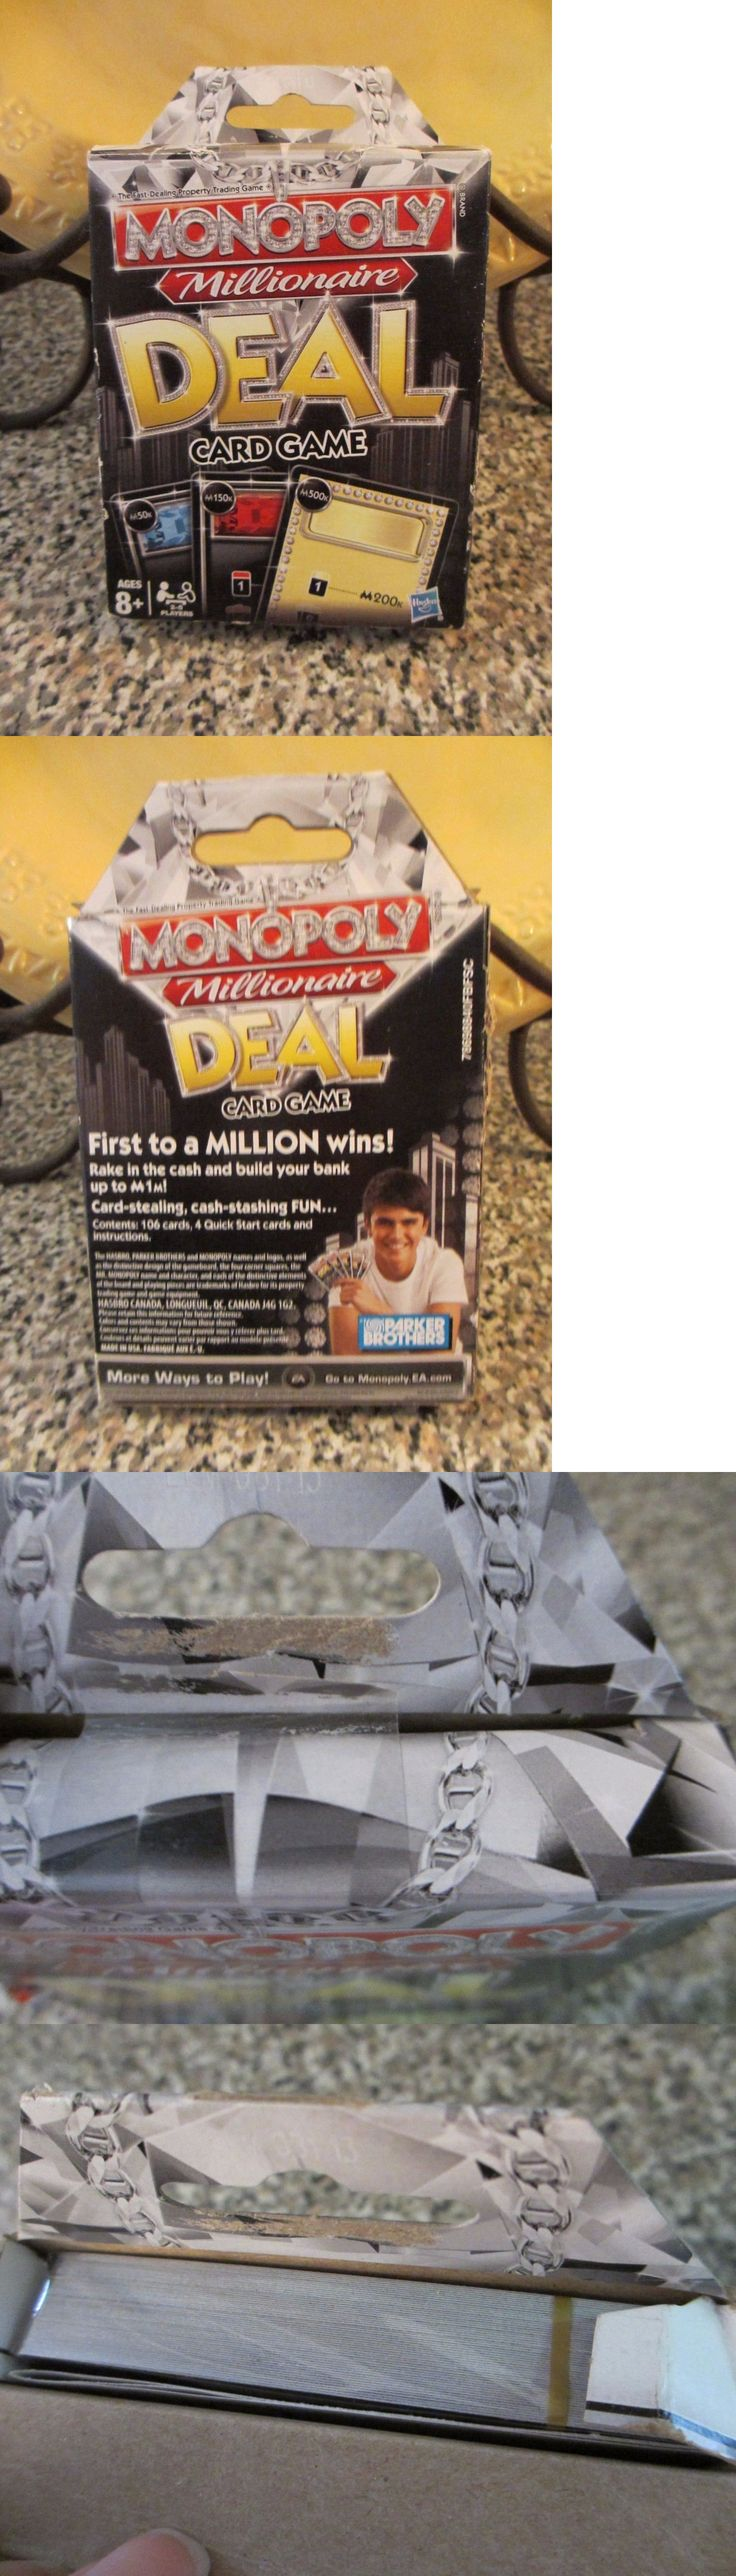 Other Card Games and Poker 2552: Parker Brothers Monopoly Millionaire Deal Card Deal 2011 Made In Usa -> BUY IT NOW ONLY: $32.99 on eBay!